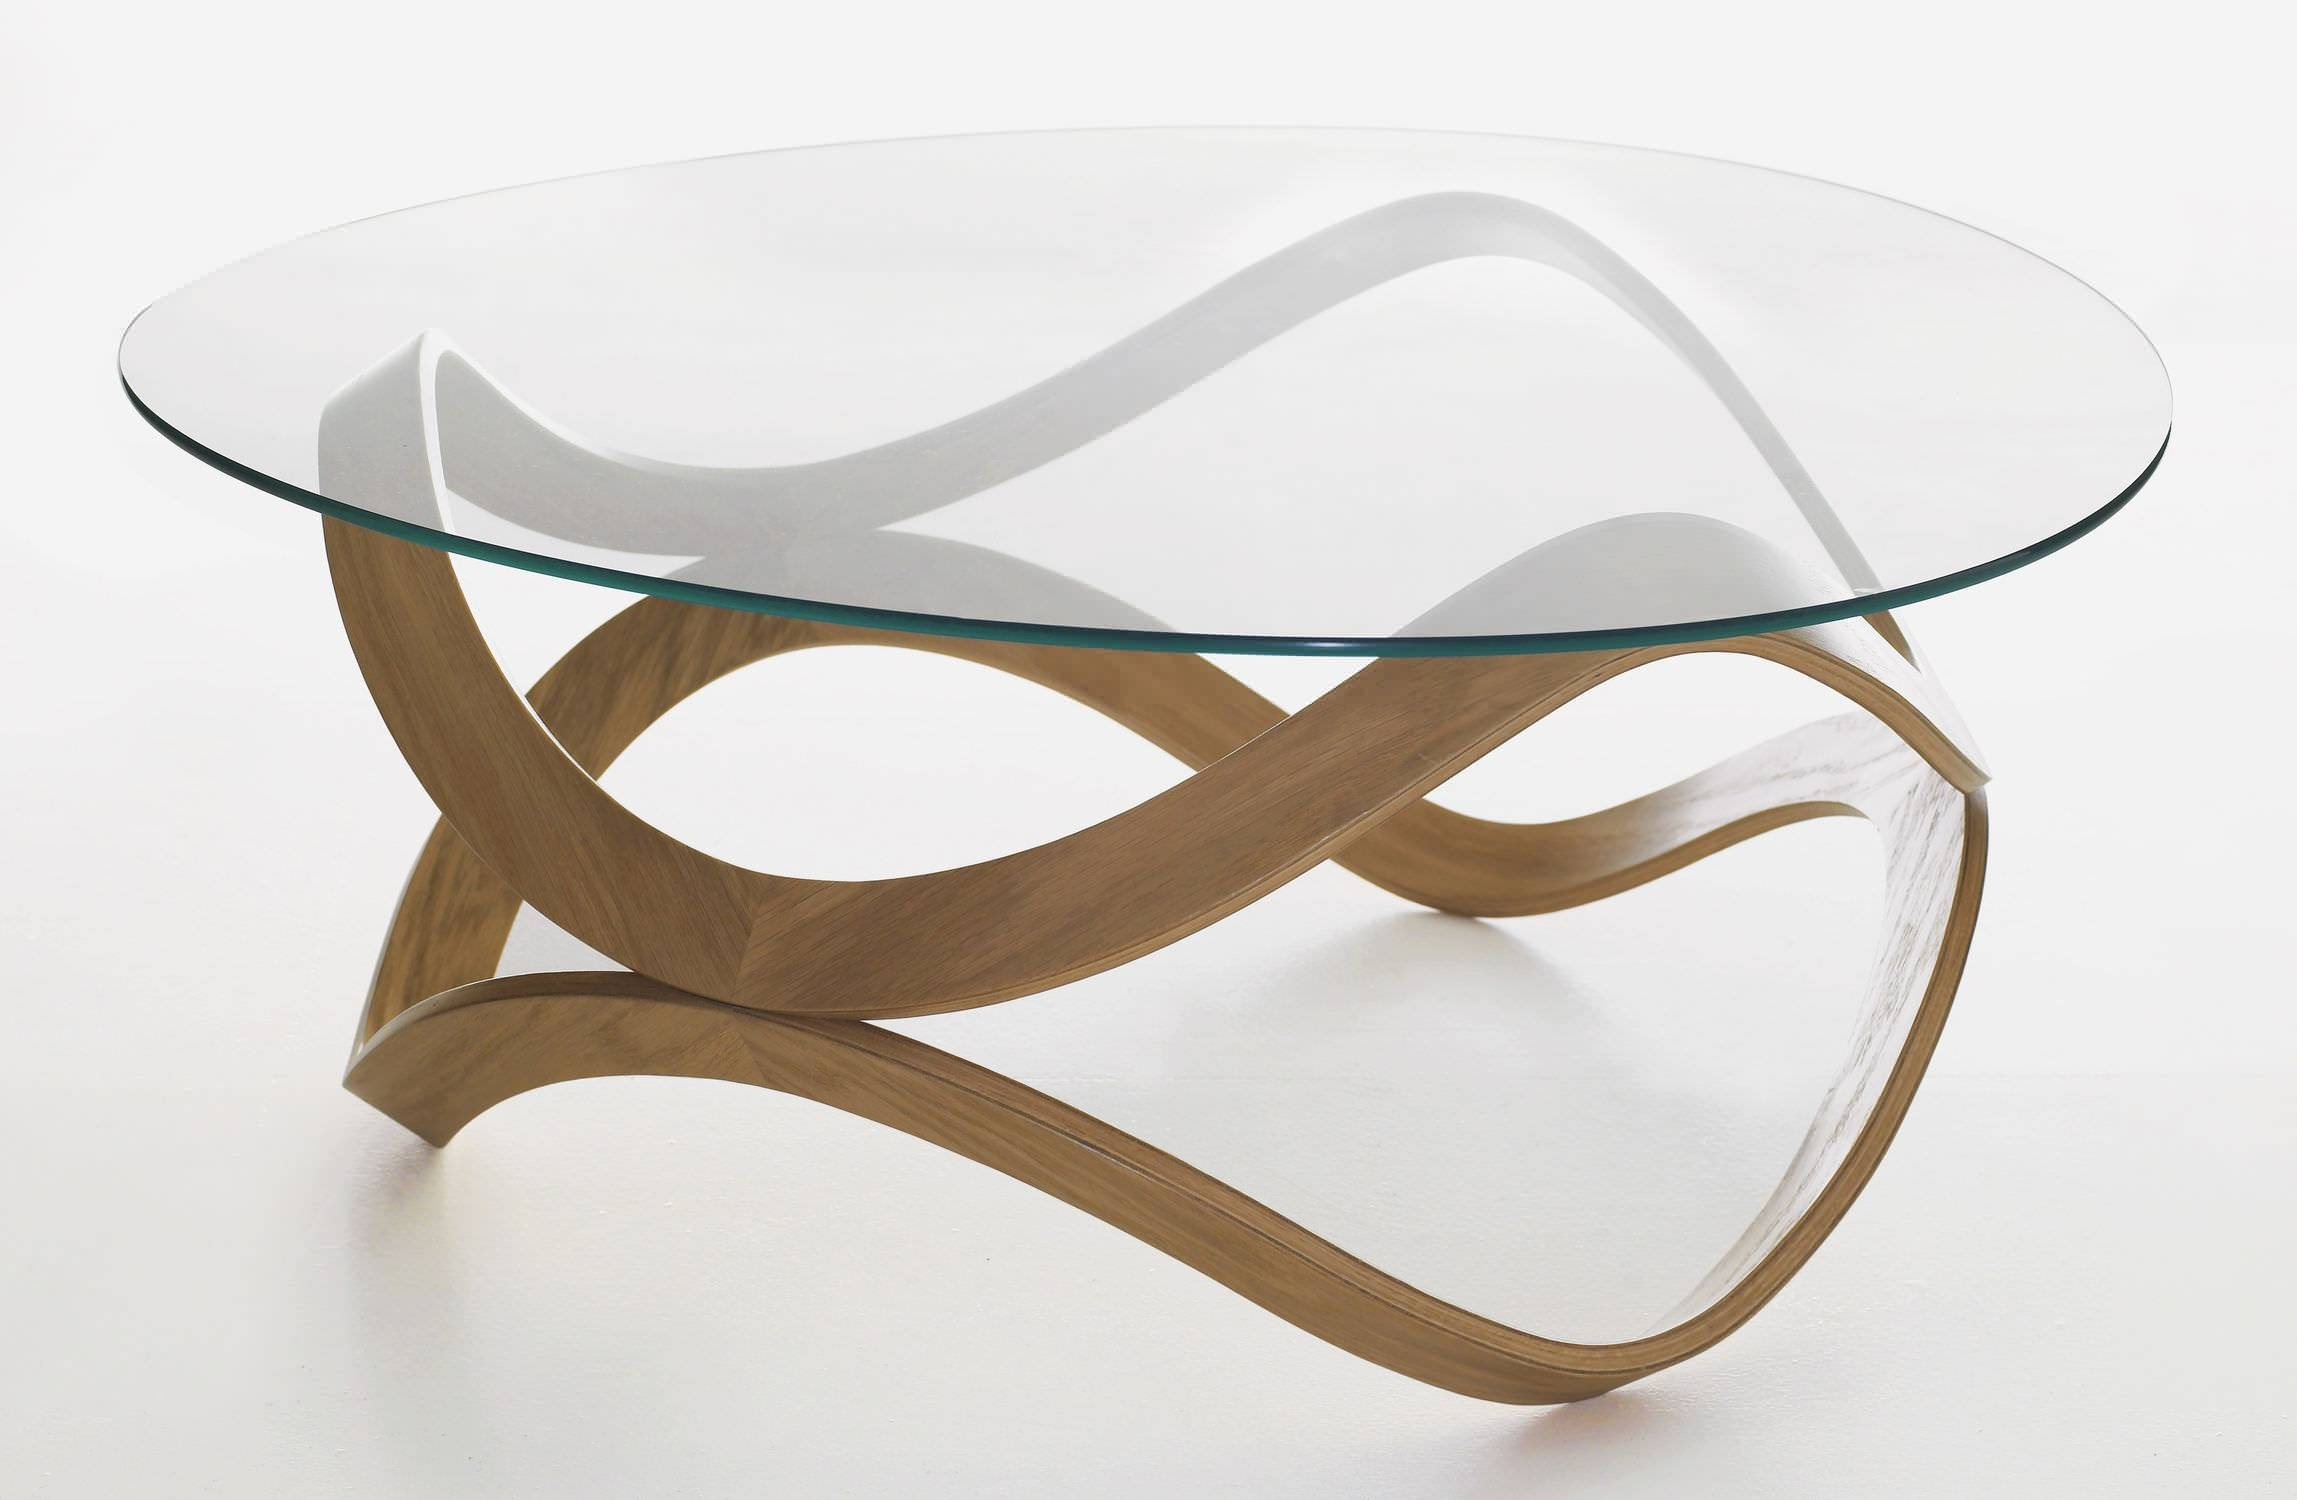 Contemporary Coffee Table / Glass / Oak / Ash - Newtond.sunaga within Glass and Oak Coffee Tables (Image 12 of 30)